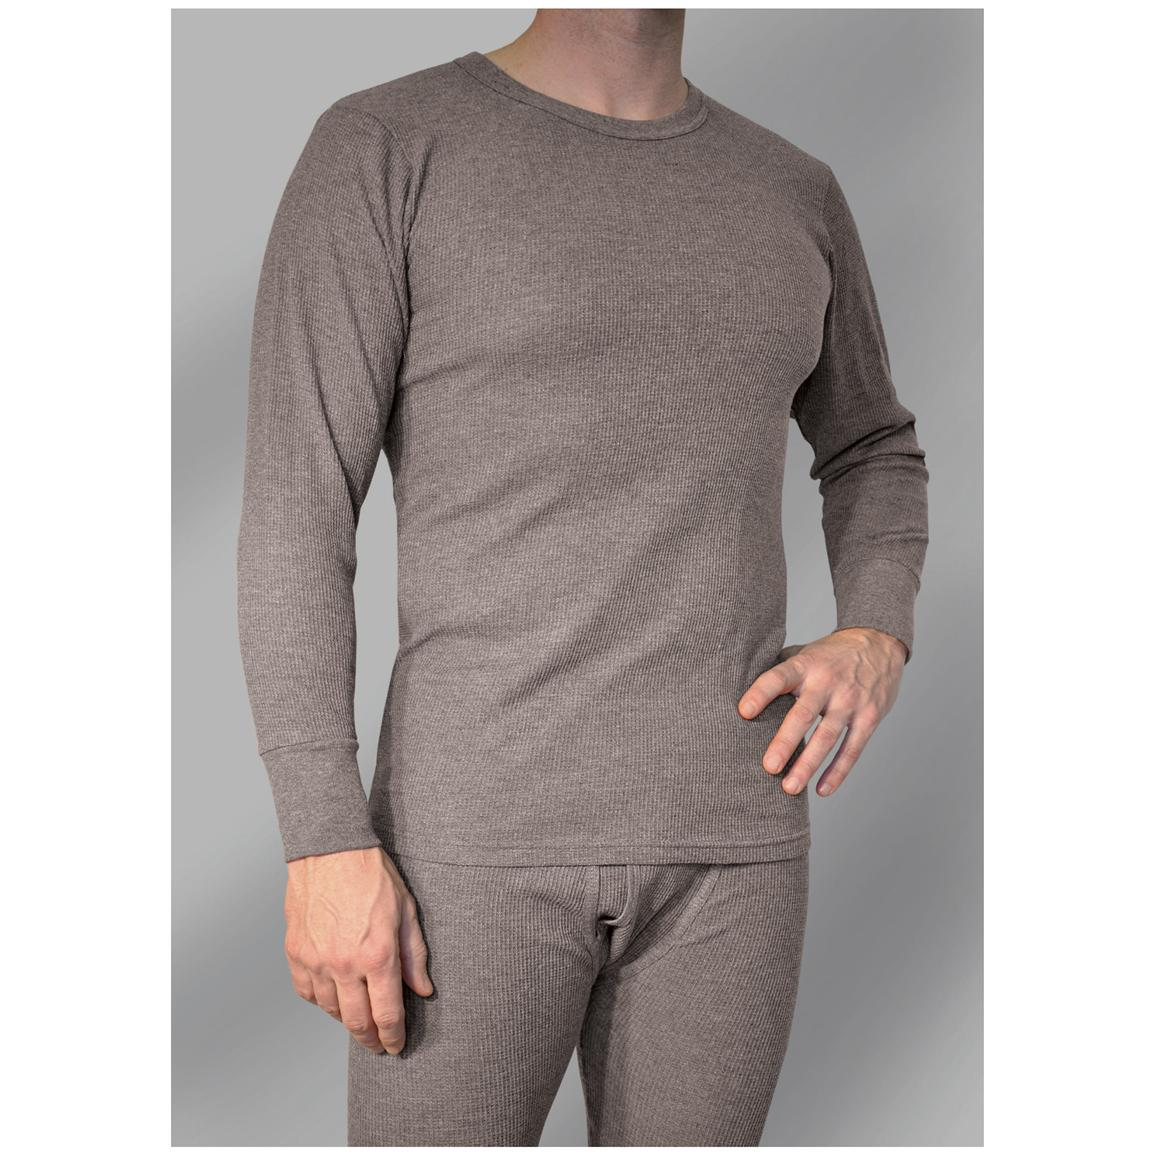 Work King® Waffle Knit Thermal Long Underwear Shirt